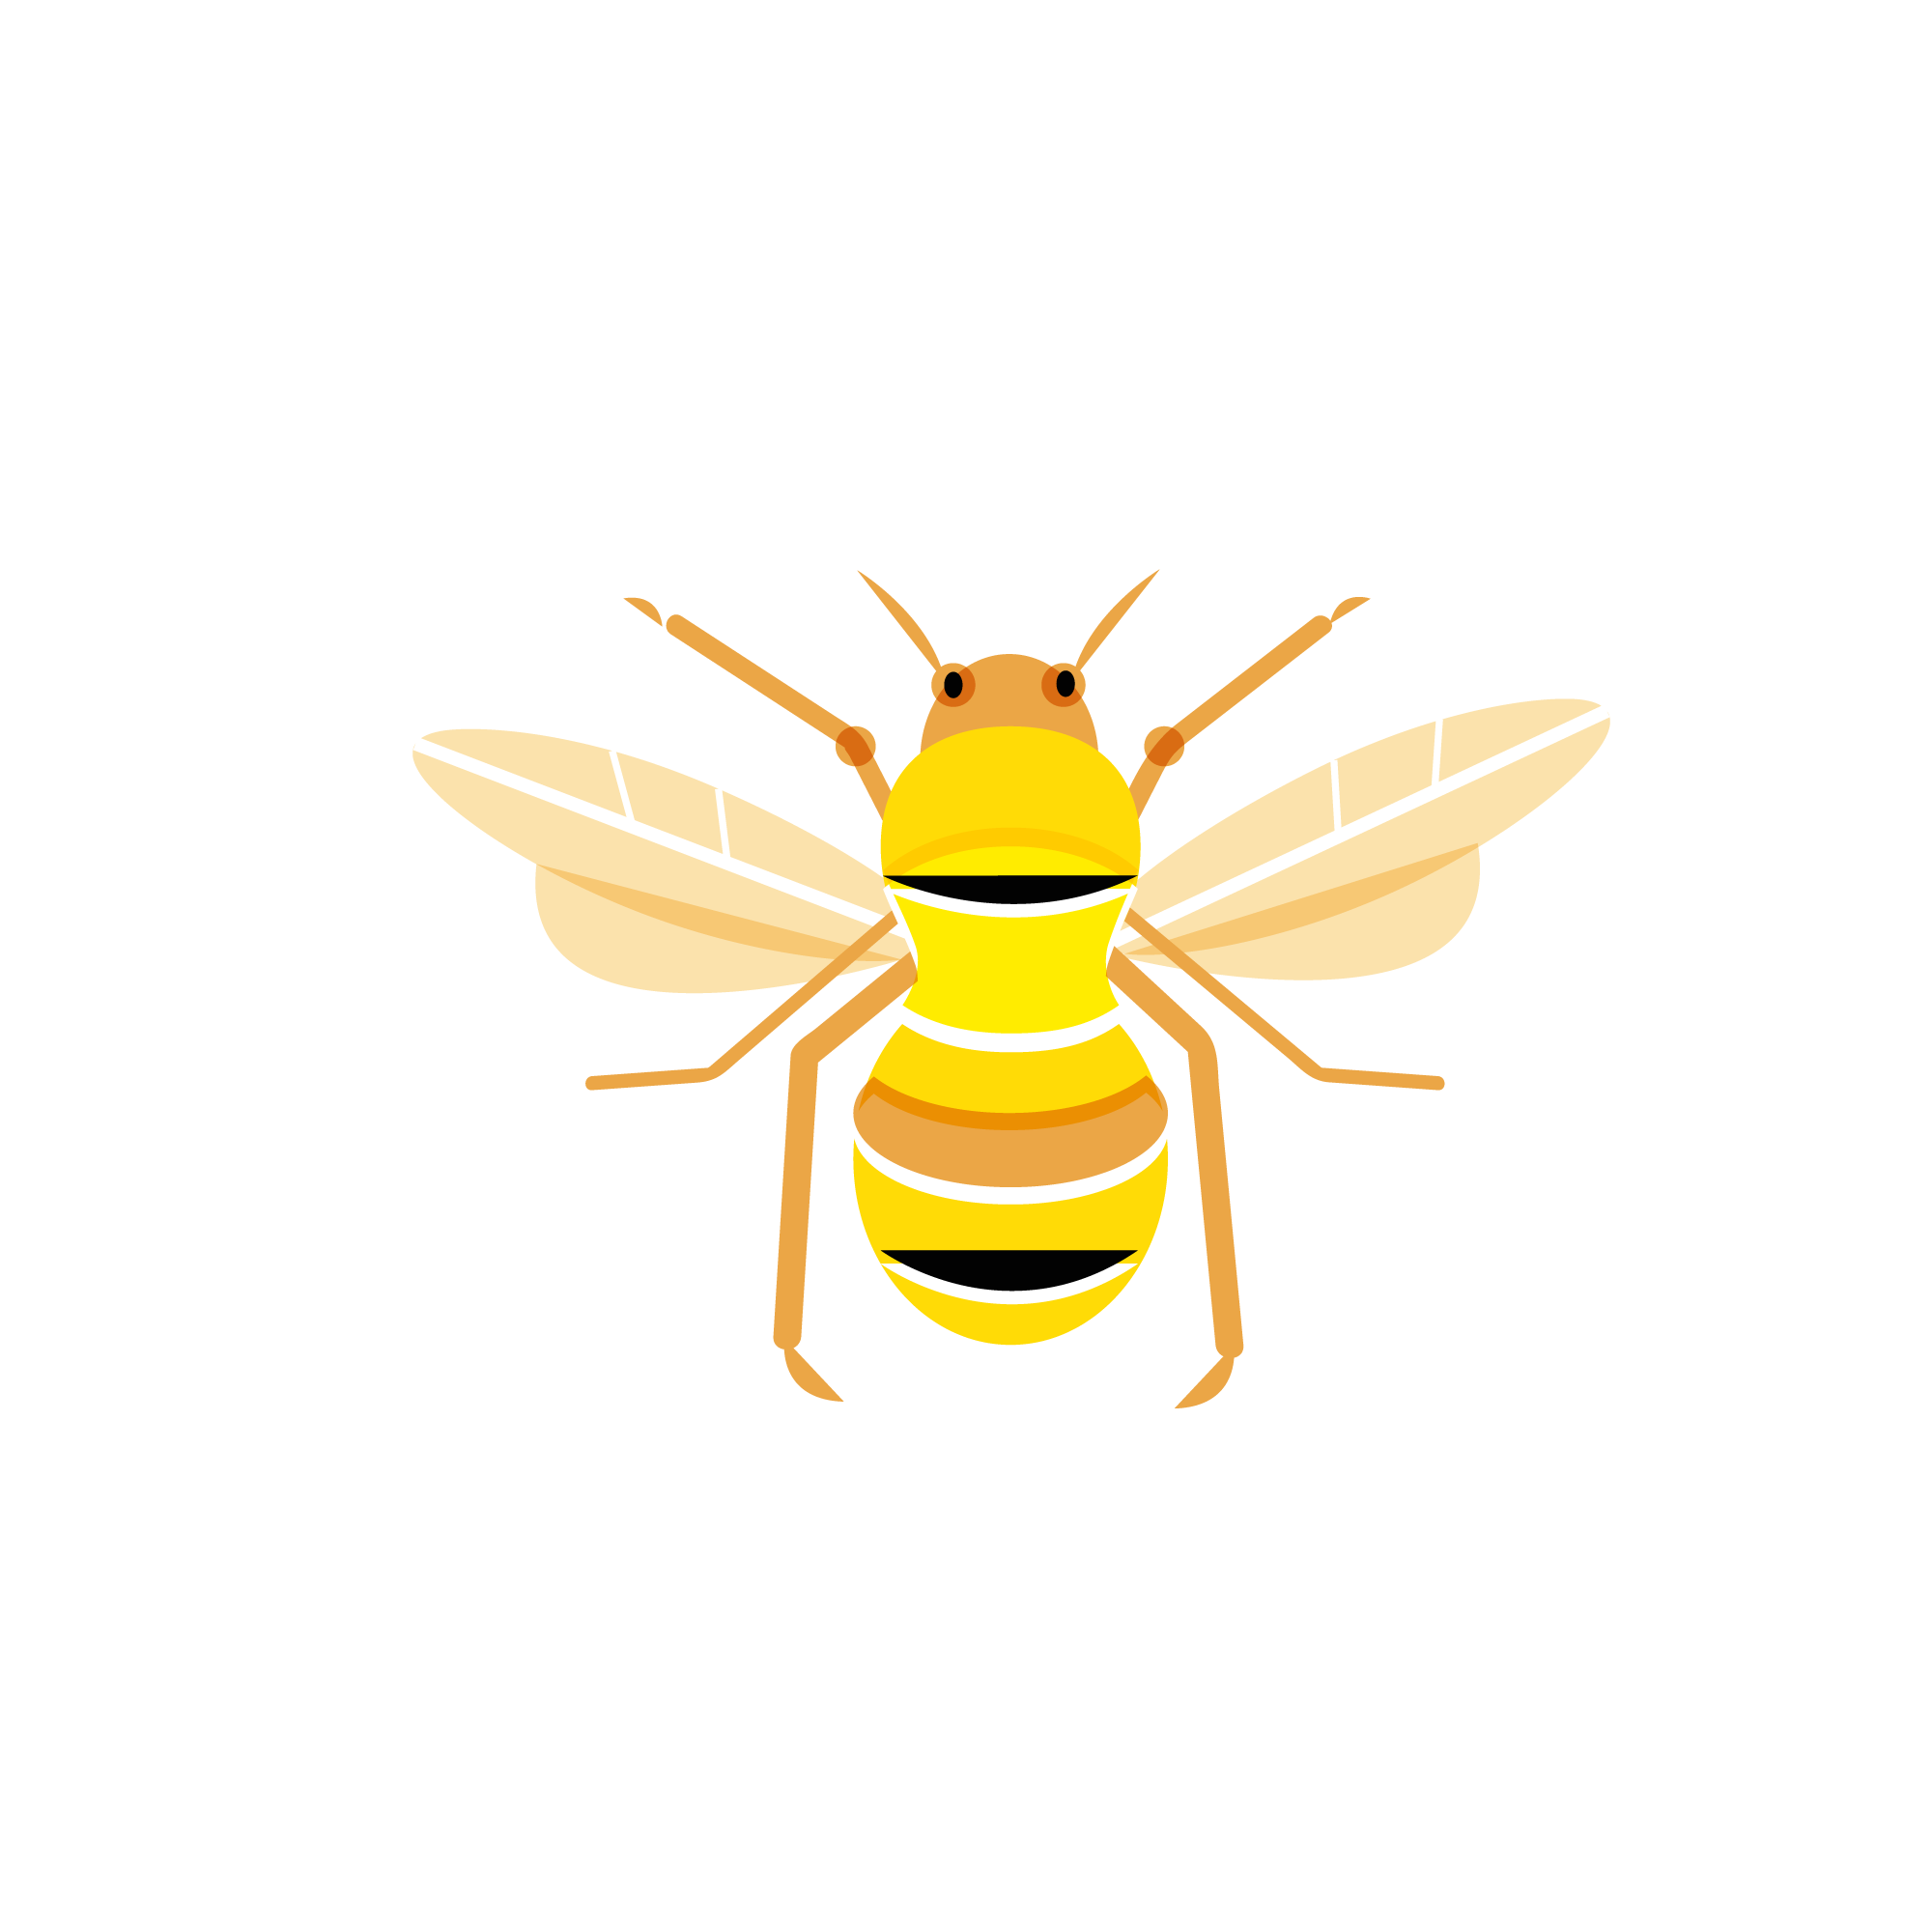 Bee_emelinebarrea_copyright.png